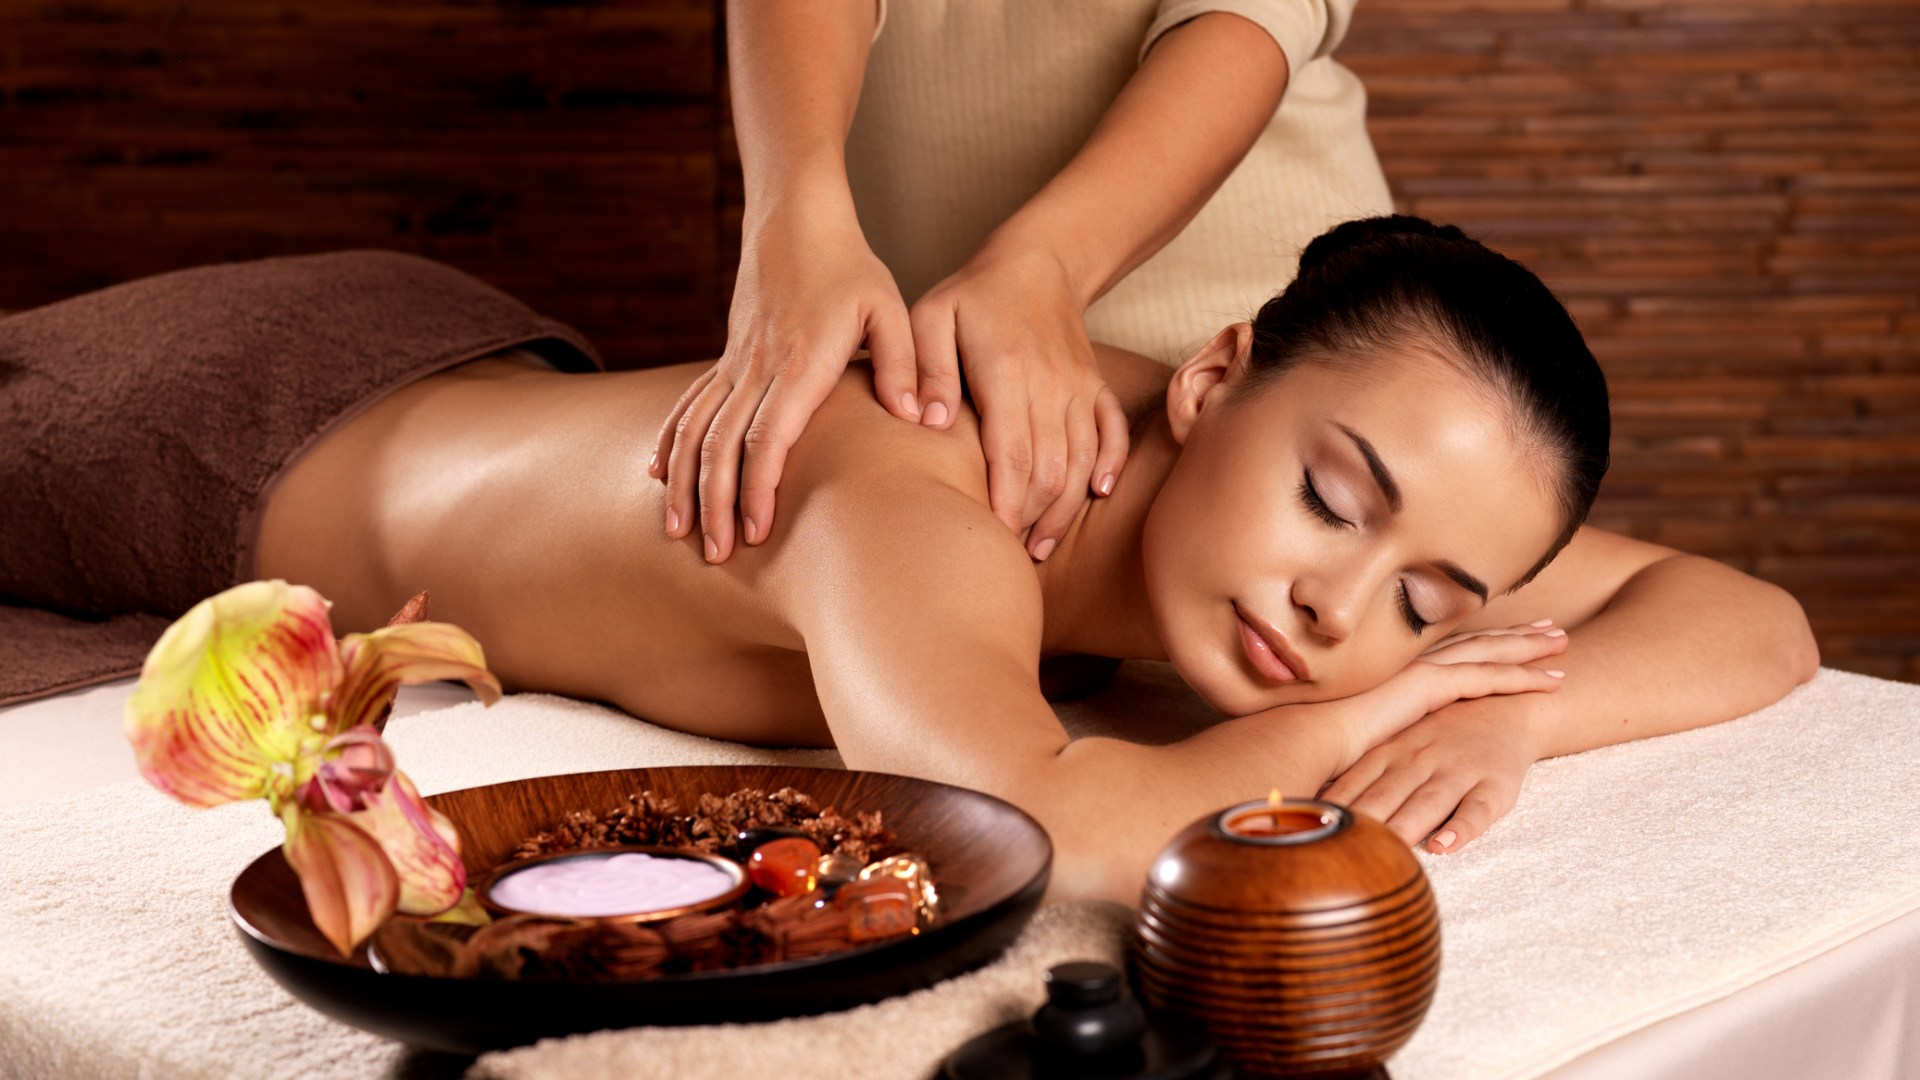 WELCOME TO THAI ORCHID MASSAGE